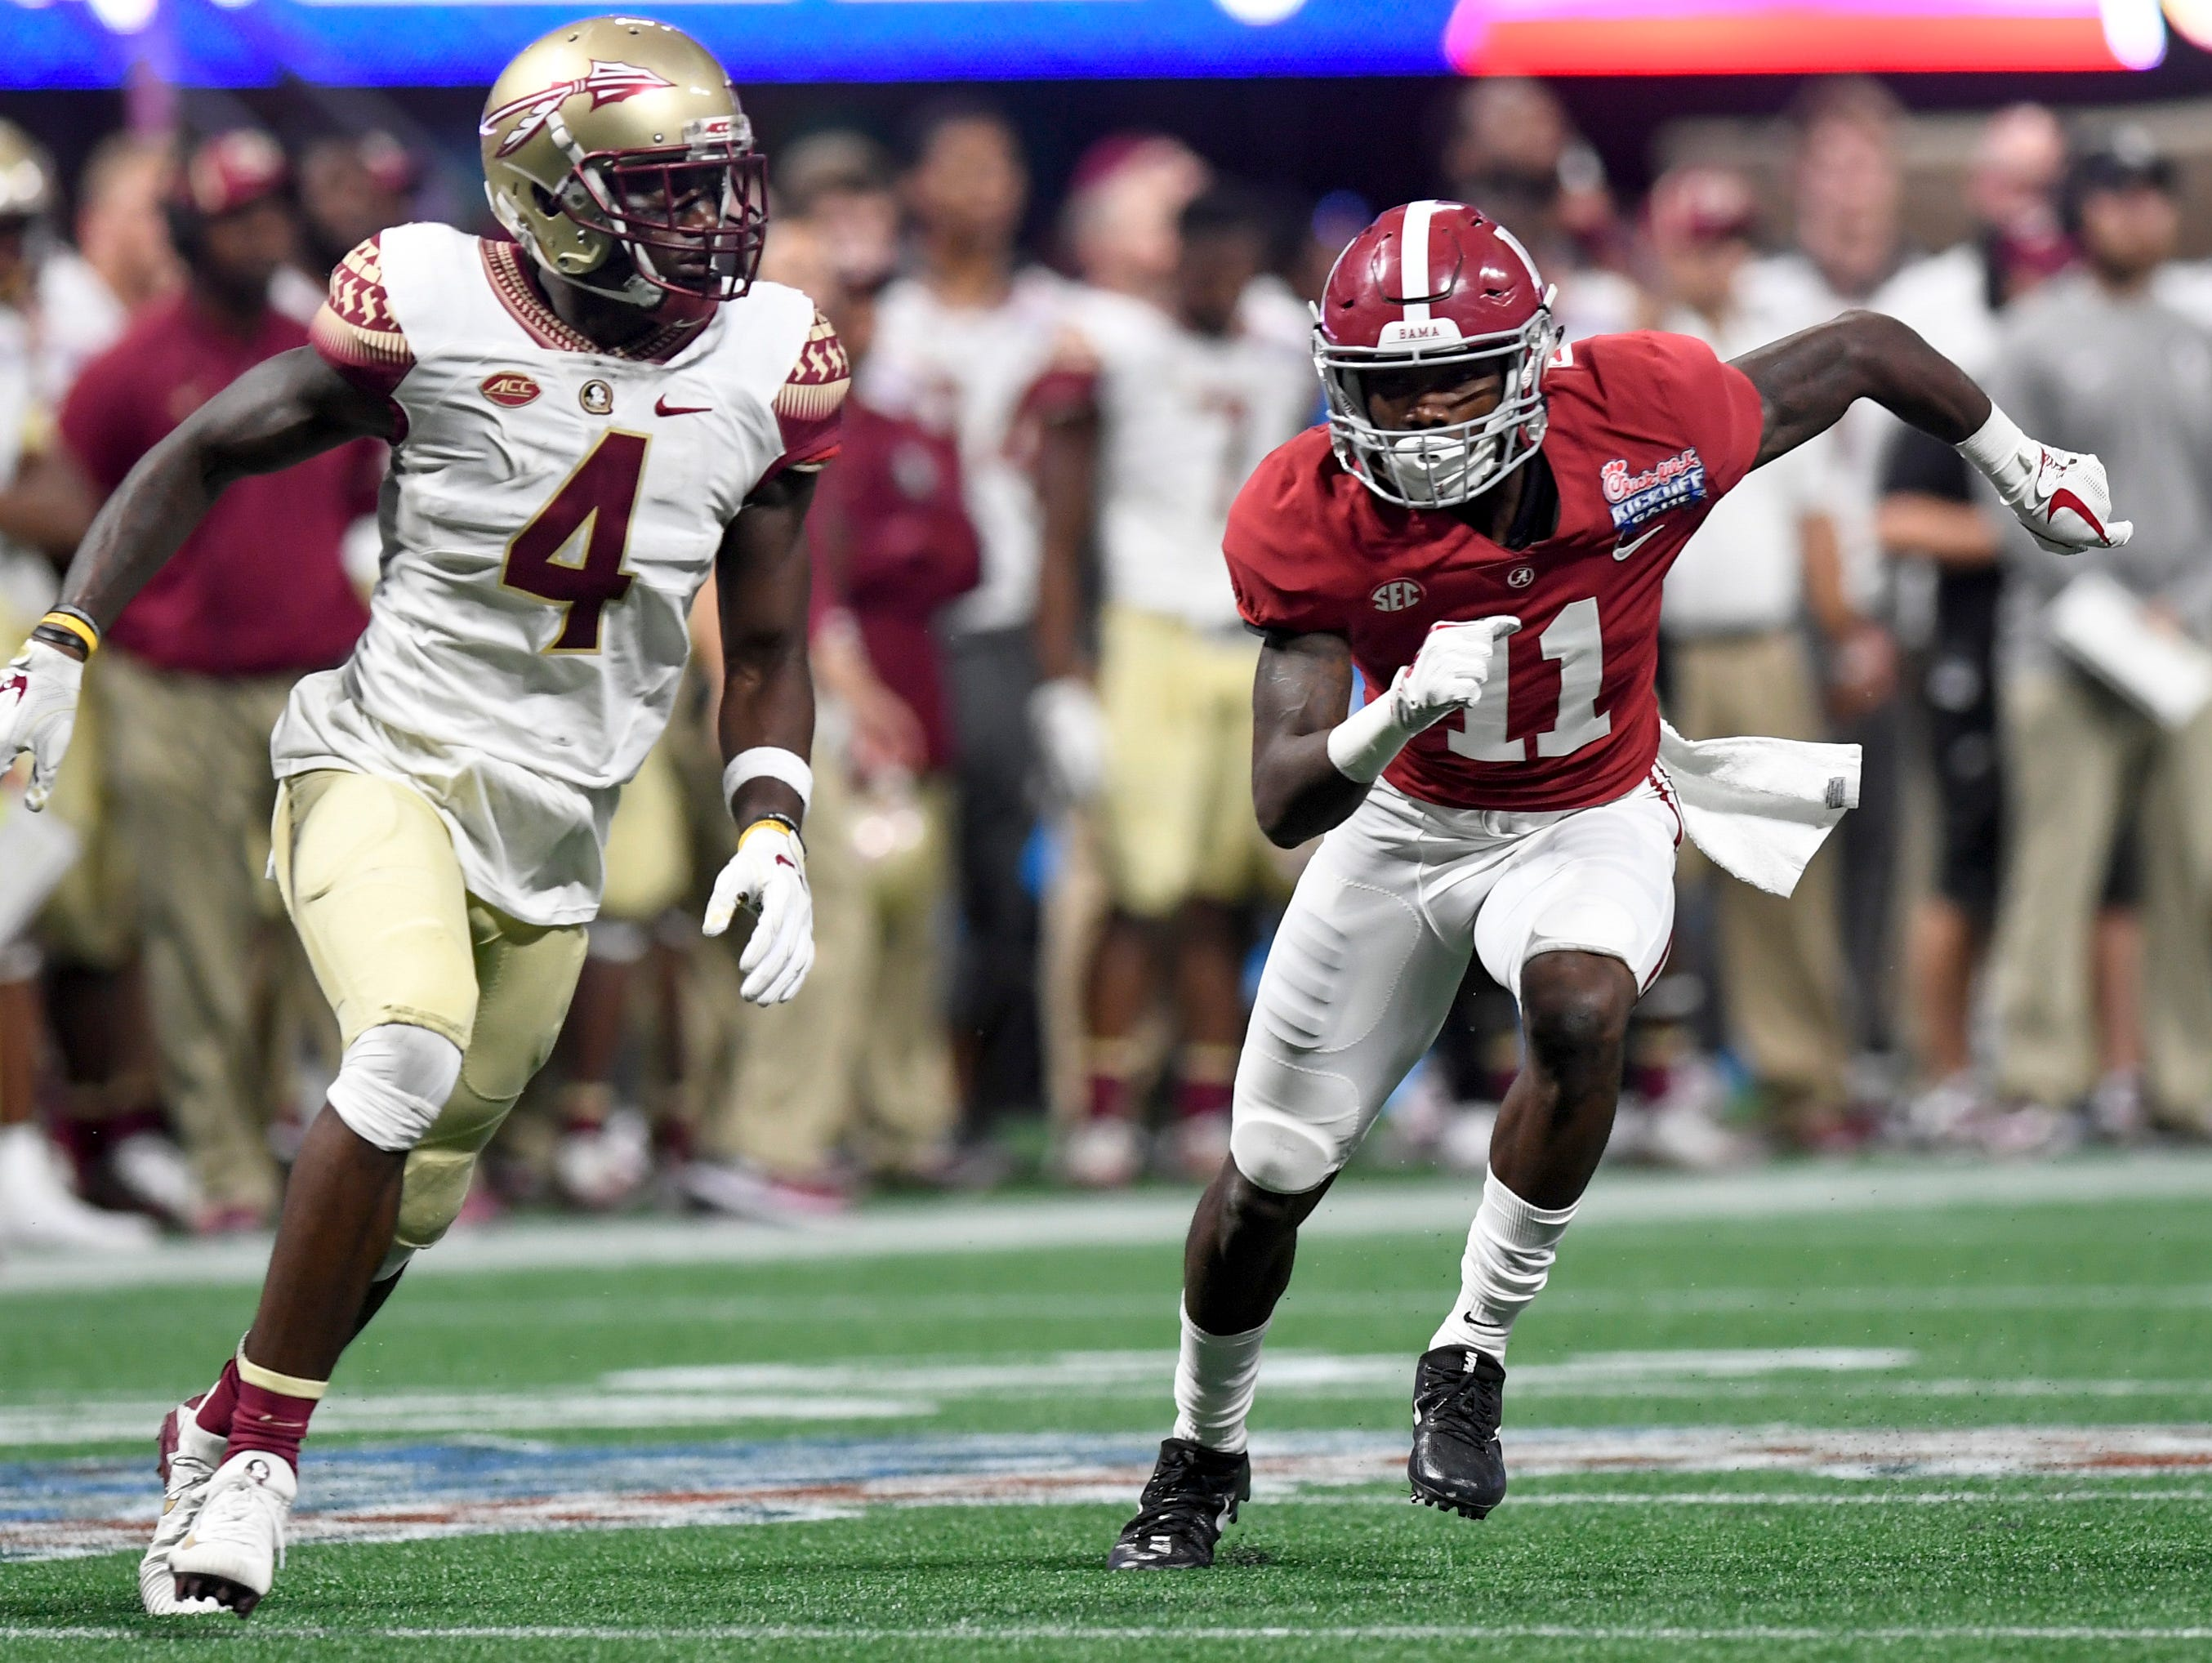 Alabama wide receiver Henry Ruggs III (11) against Florida State in the Chick-fil-a Classic at the Mercedes - Benz Stadium in Atlanta, Ga., on Saturday September 2, 2017. (Mickey Welsh / Montgomery Advertiser)